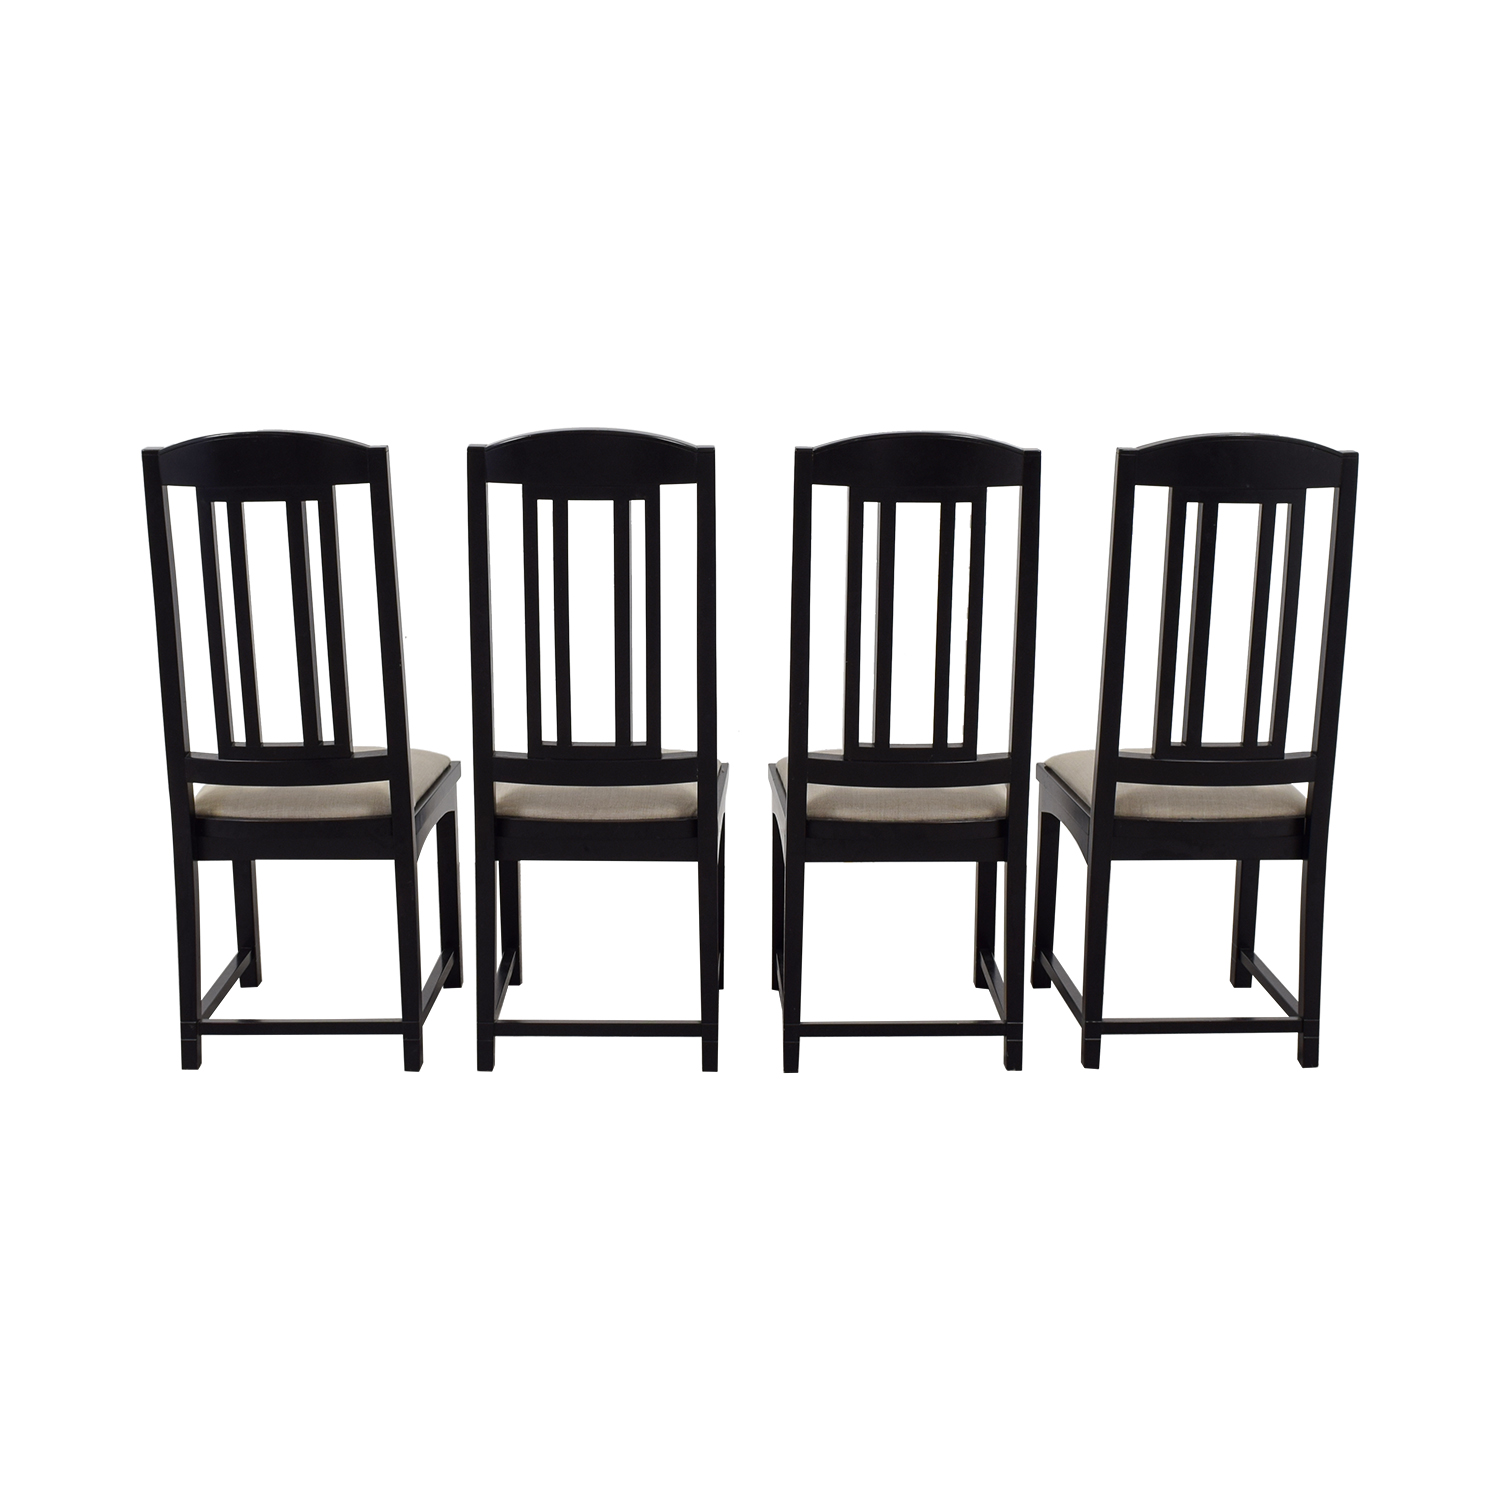 PACE Collection PACE Collection Beige Upholstered and Black Dining Chairs